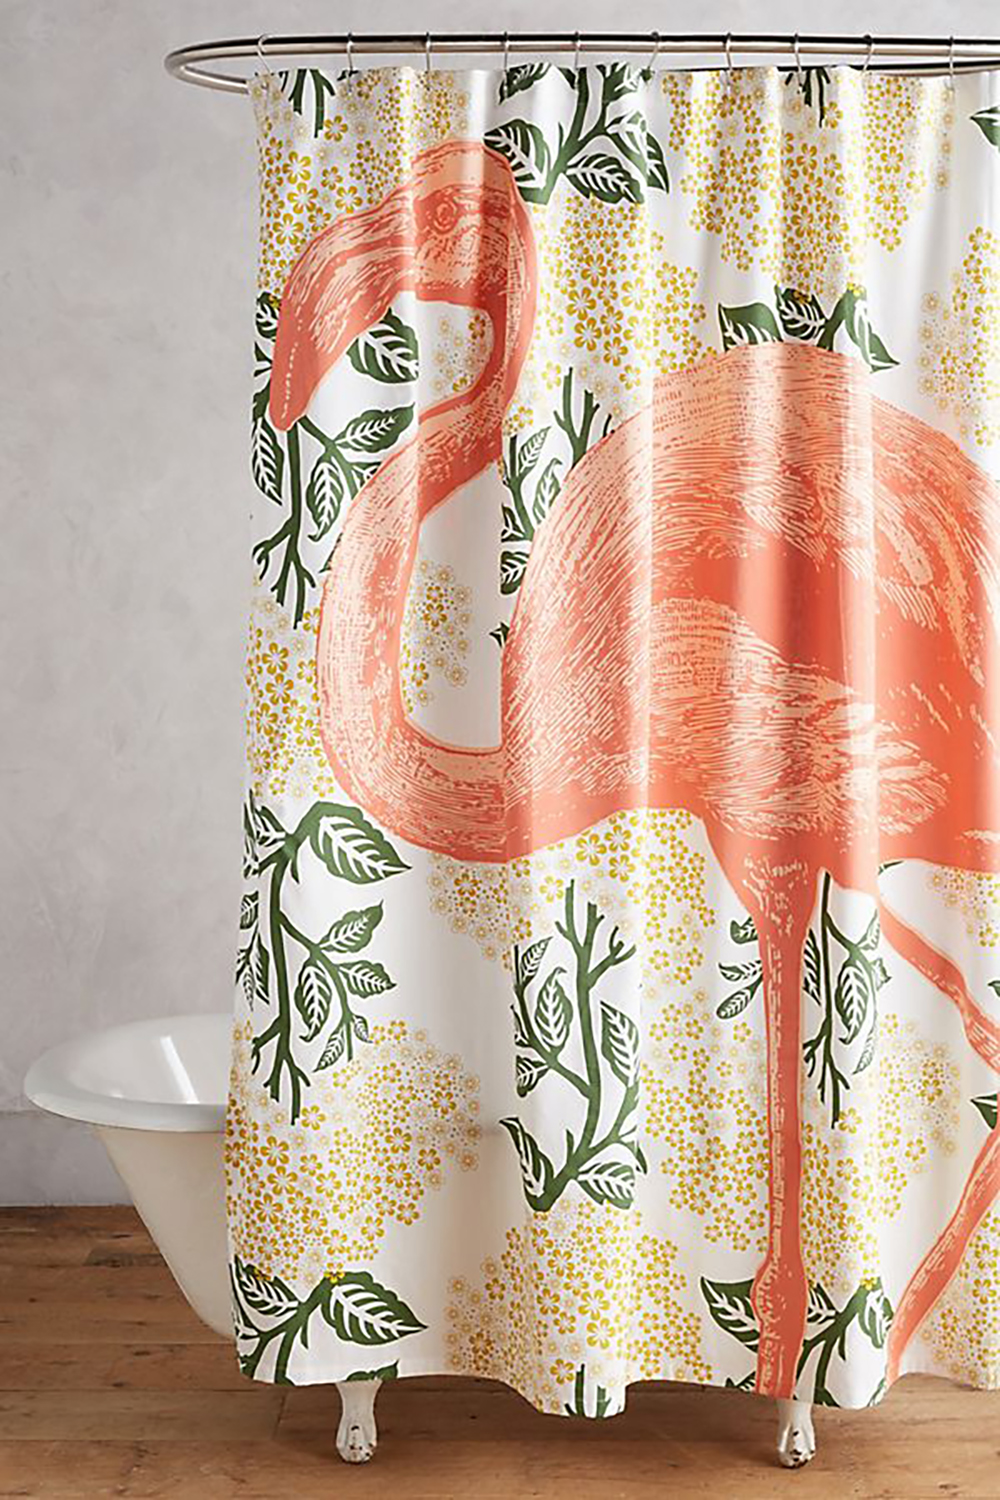 Flamingo patterned shower curtain by Anthropologie - Decorate your home with flamingos | Aliz's Wonderland